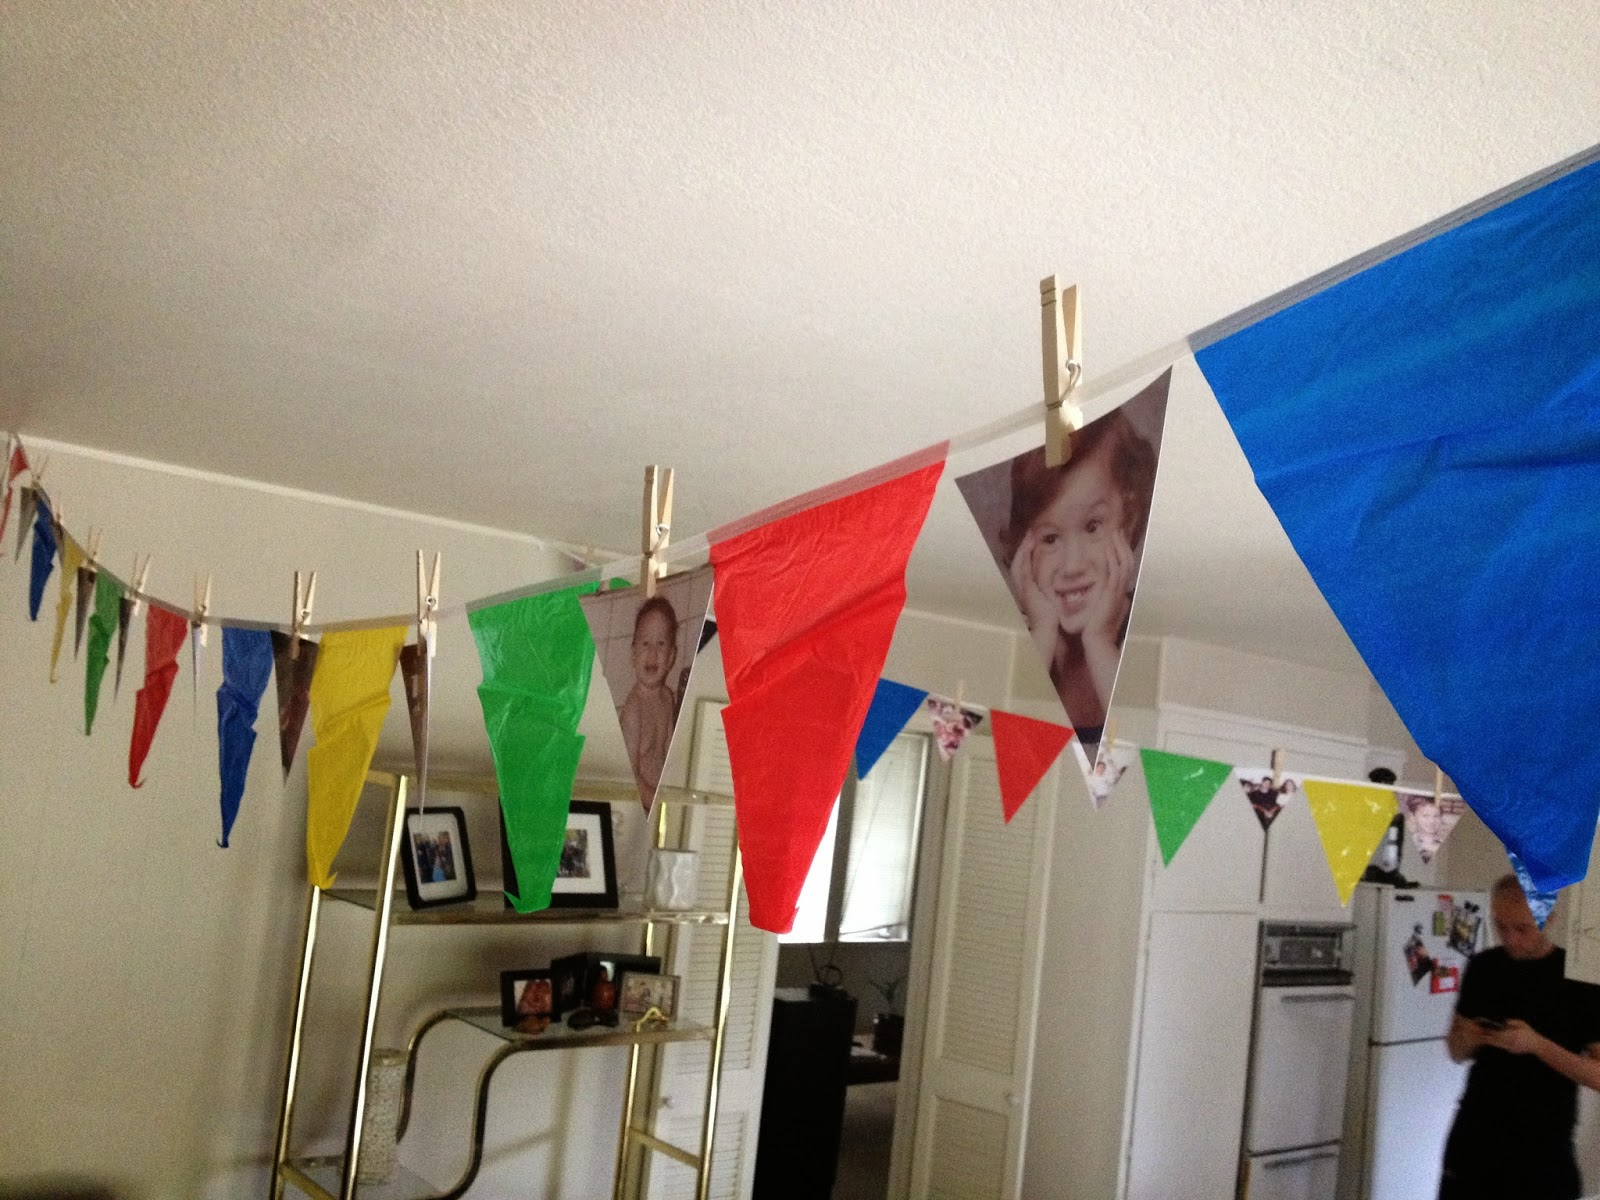 diy photo pennant banner for birthday party